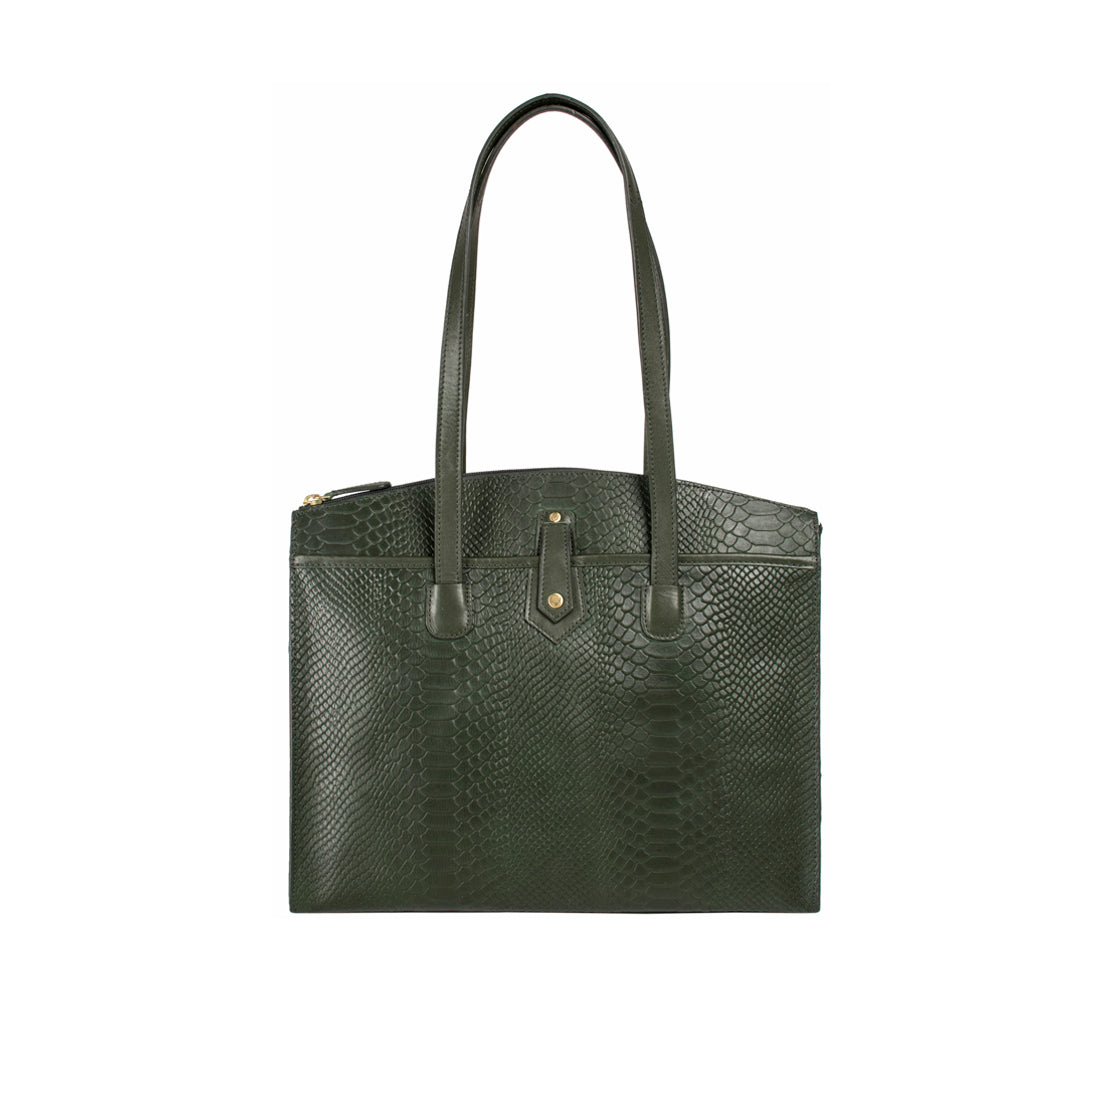 EE HONG KONG 01 TOTE BAG